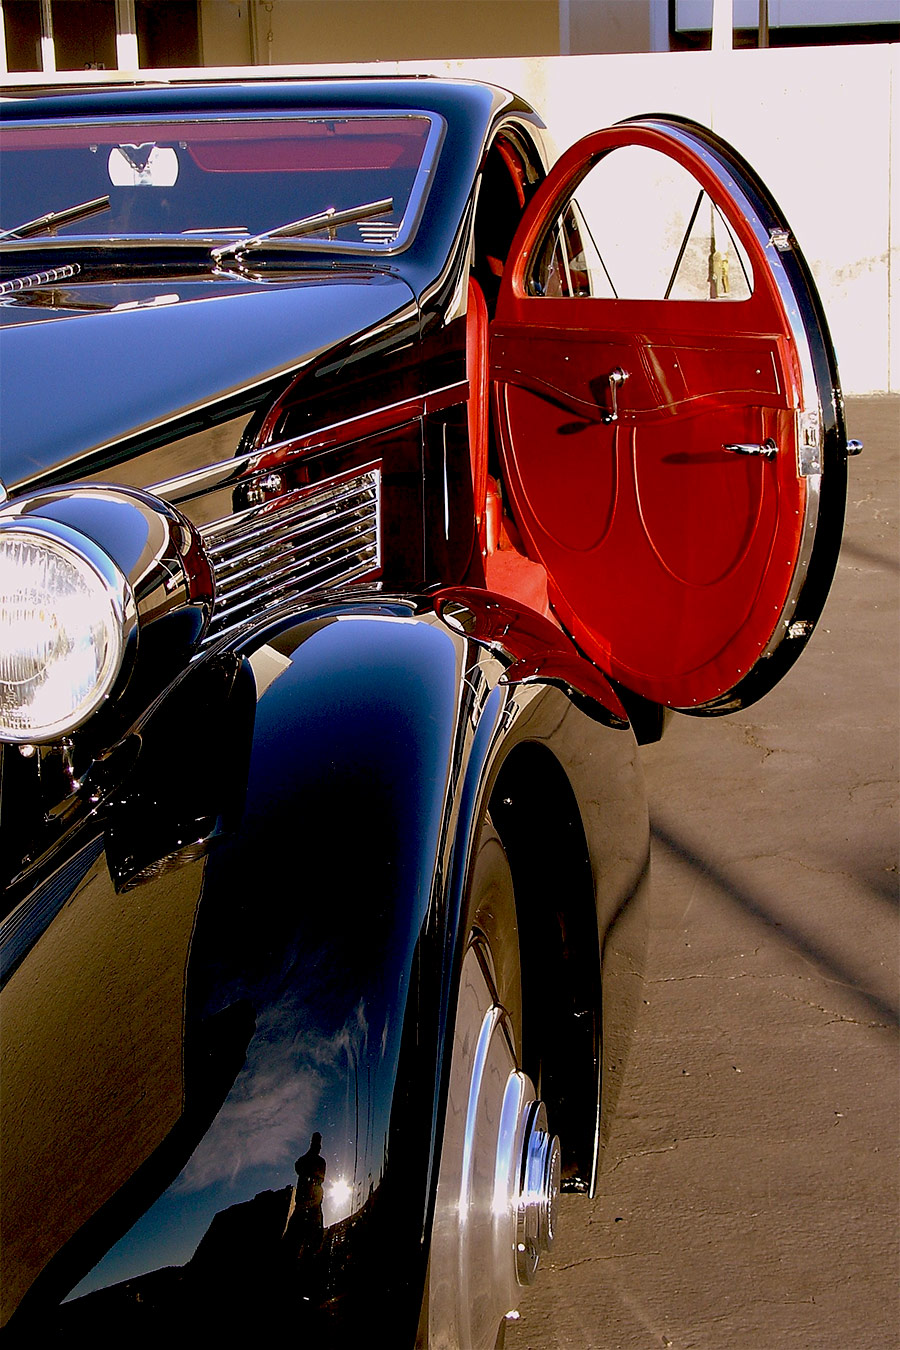 1934 Rolls Royce Phantom I Aerodynamic Coupe :: via Hub Garage